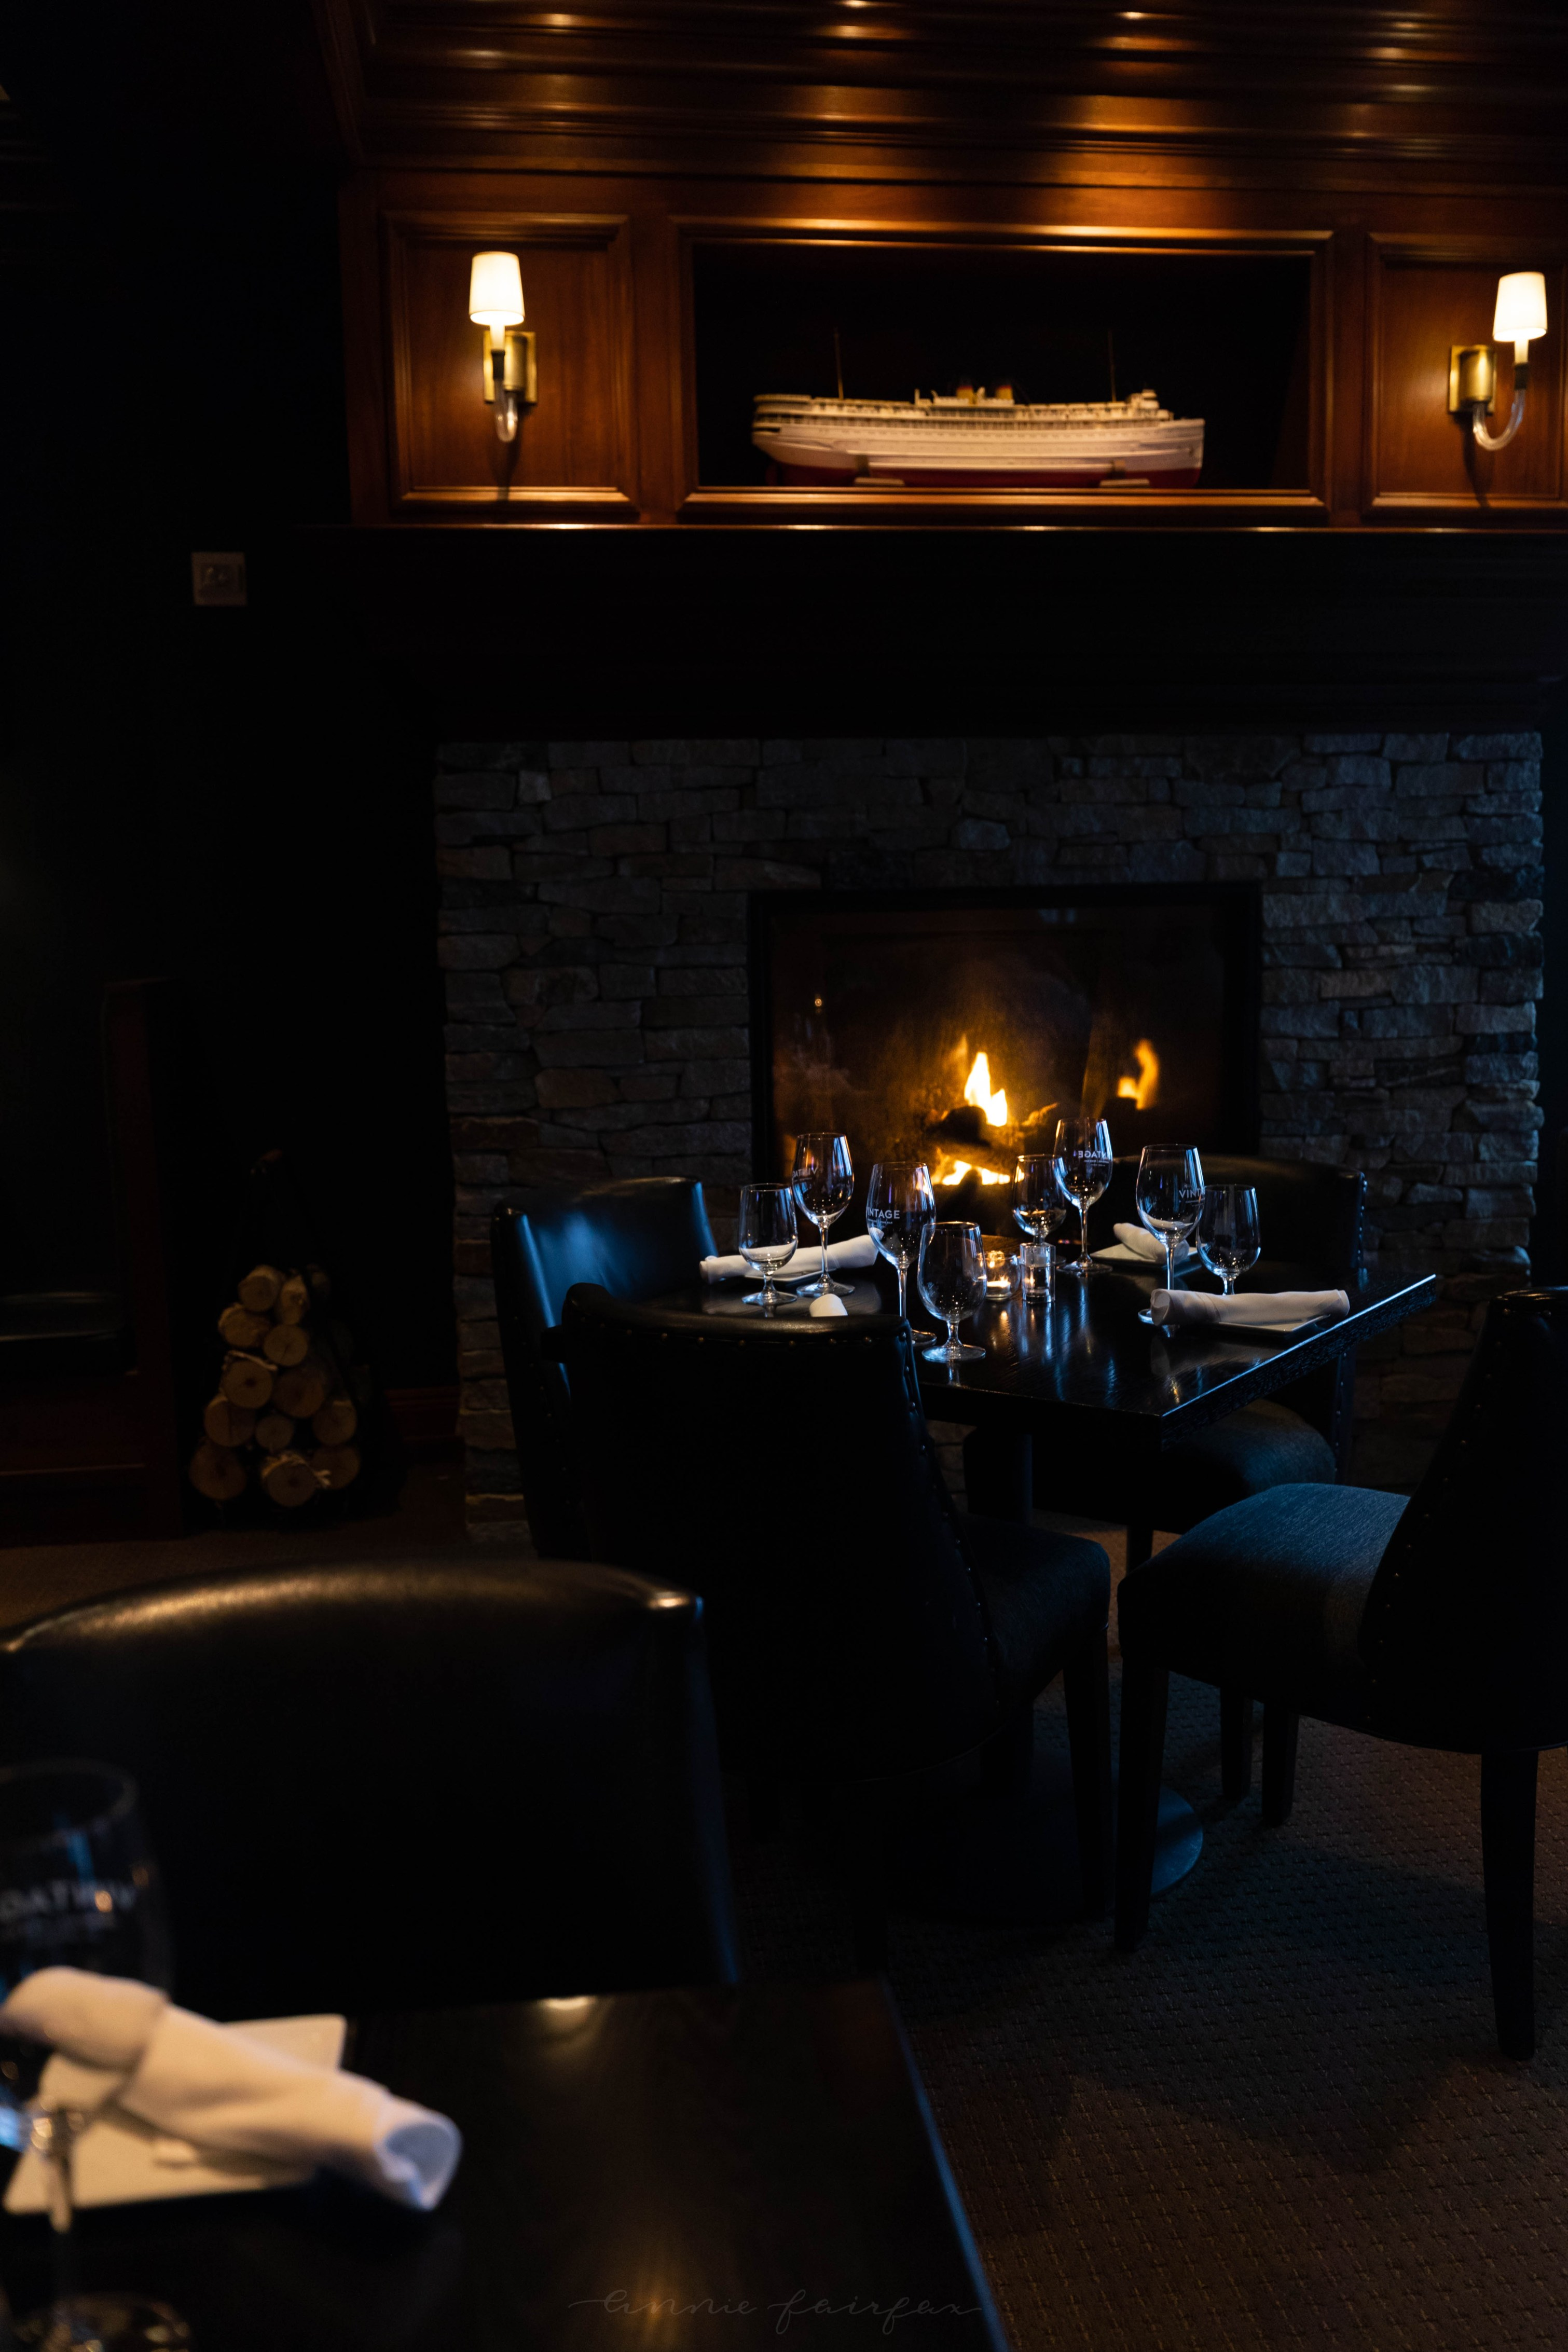 Vintage Chophouse and Wine Bar at The Inn at Bay Harbor Autograph Collection Hotel in Bay Harbor Northern Michigan Petoskey Area Luxury Hotels of the World Top 500 Hotels in the World by Annie Fairfax